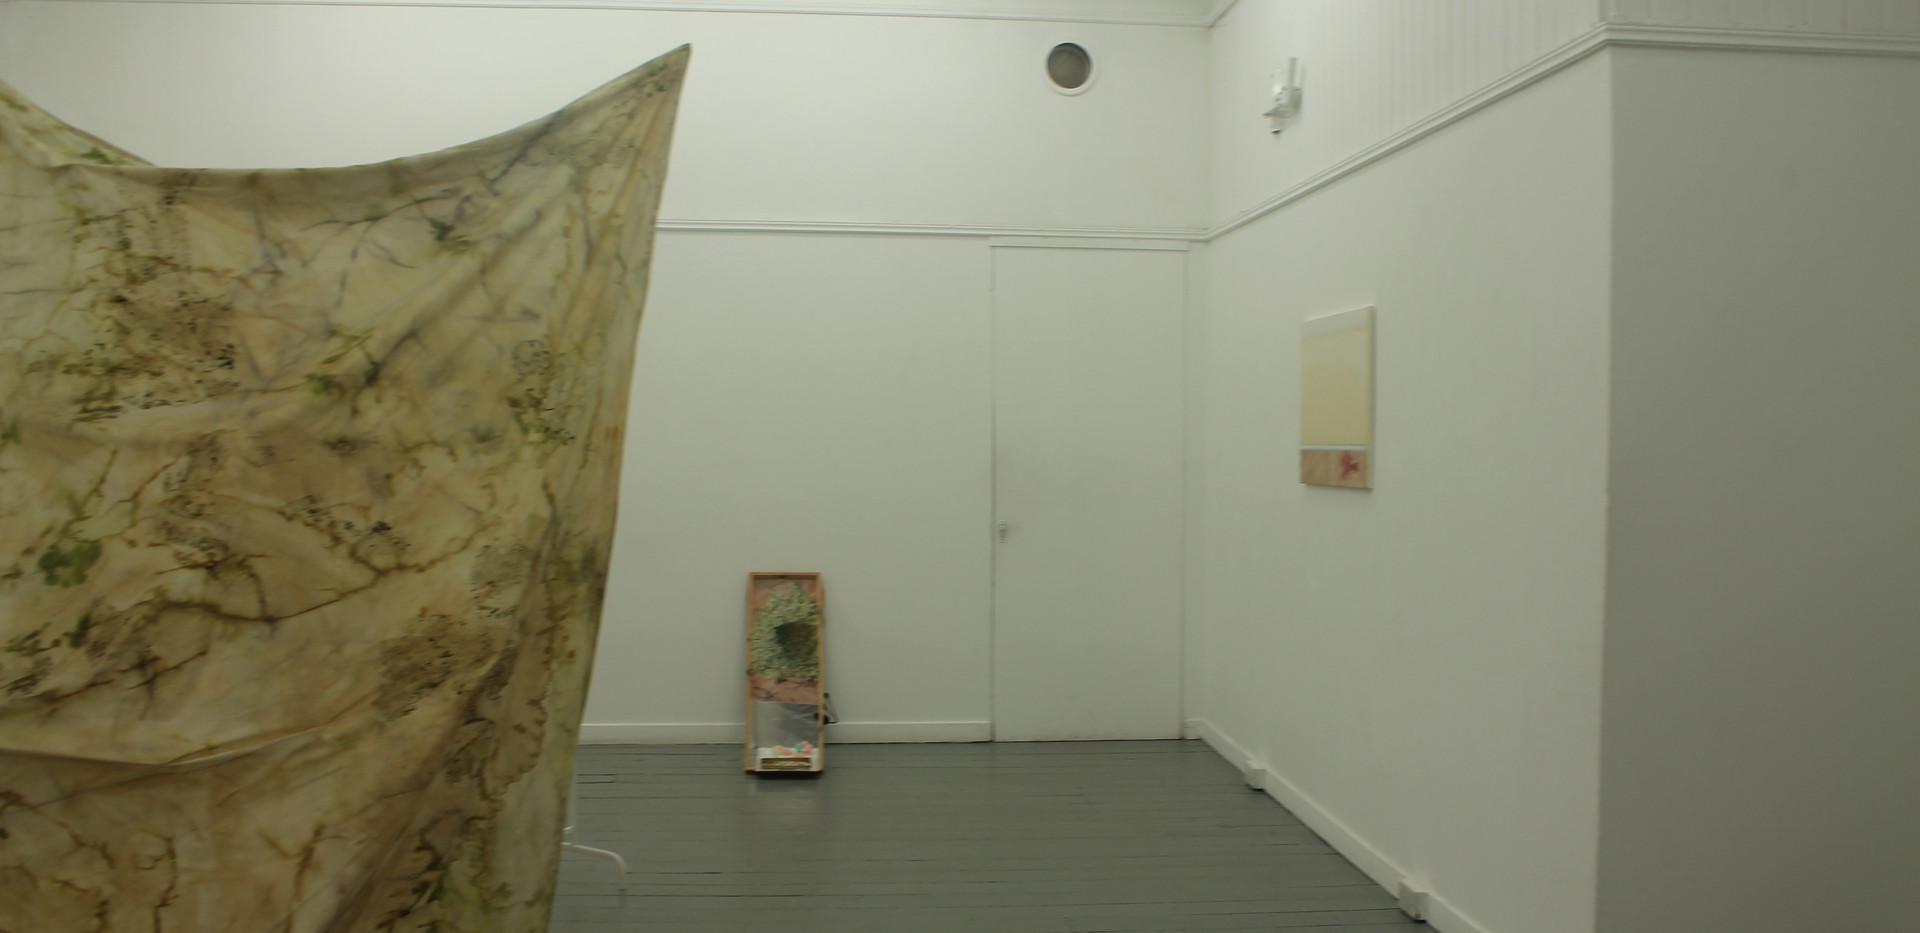 Installation view from In the Gaps, 2018.